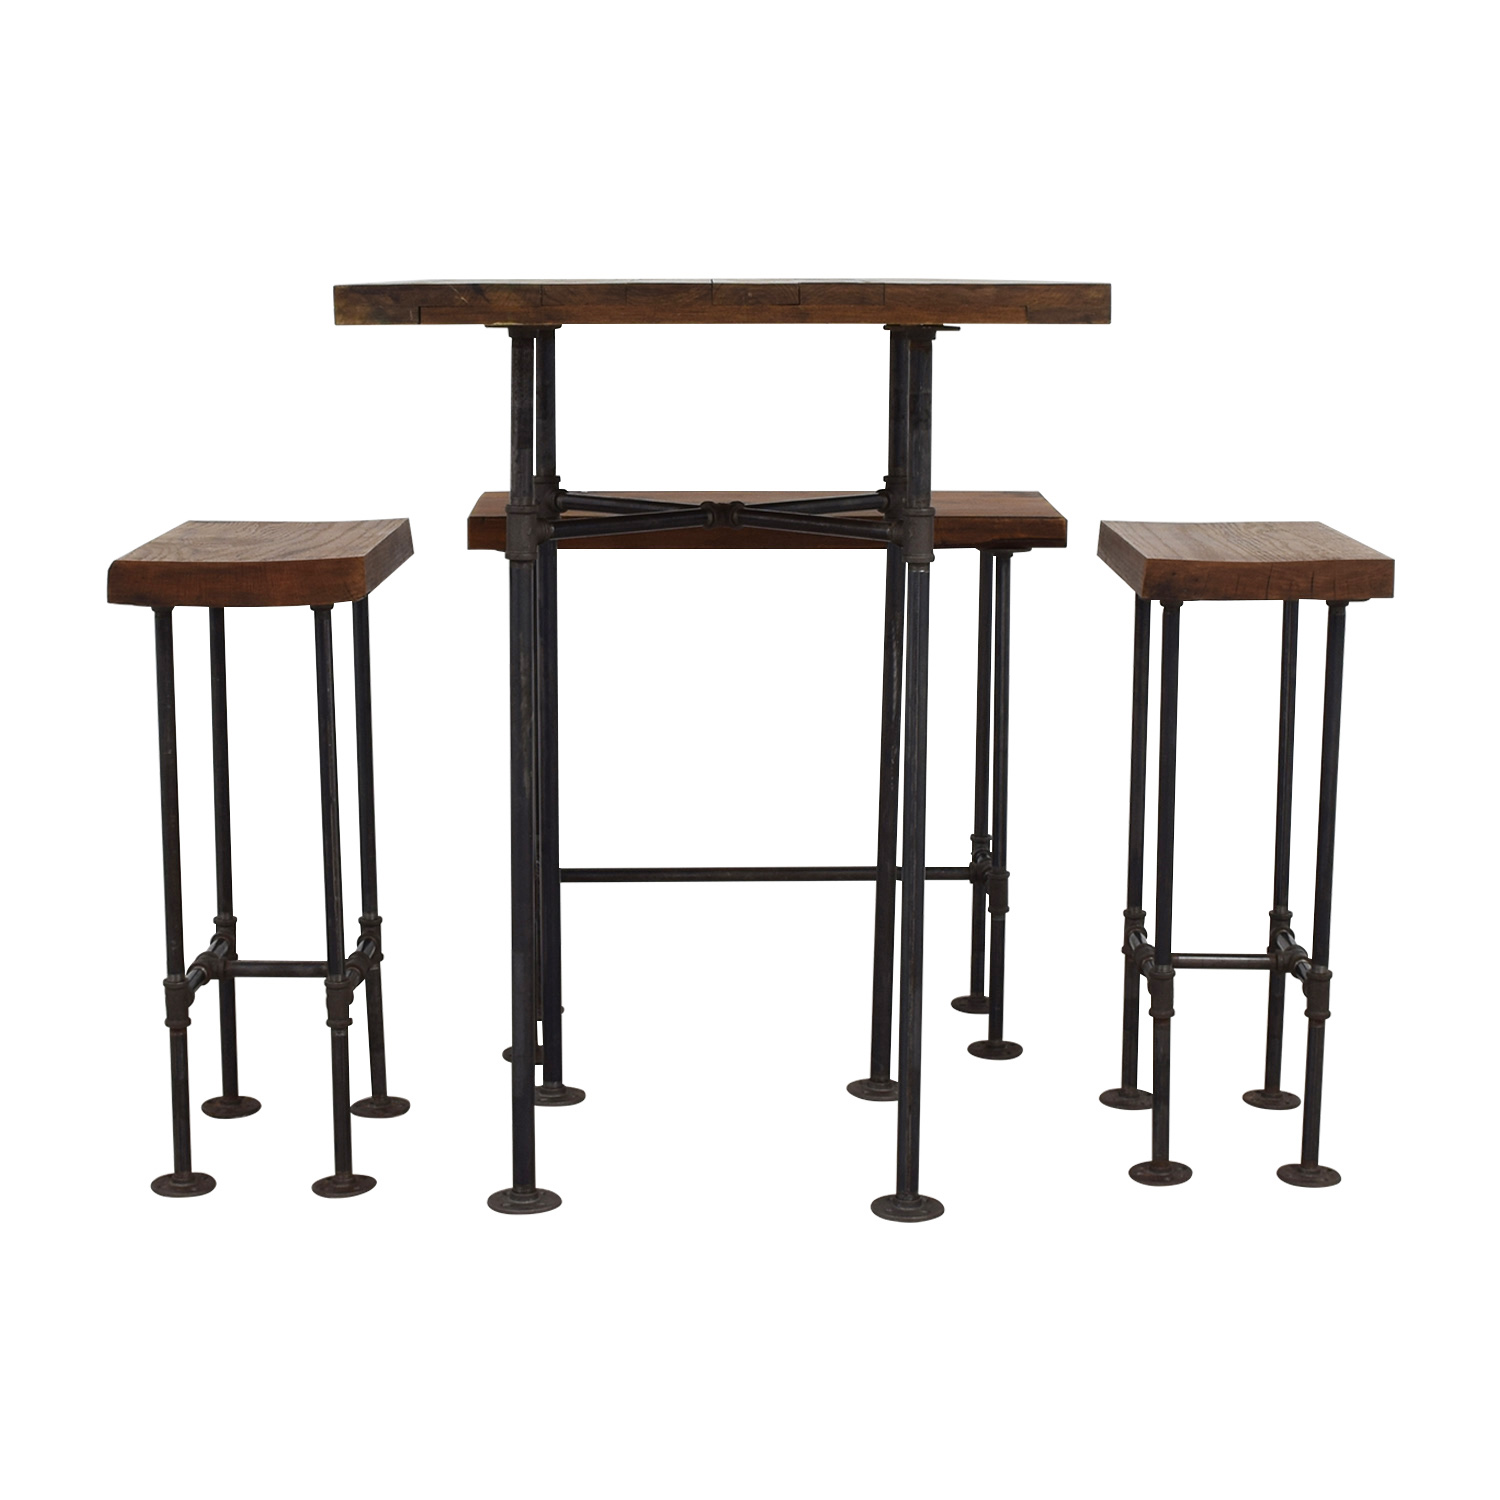 A Little of India A Little of India Industrial Reclaimed Wood Counter Table and Stools Tables